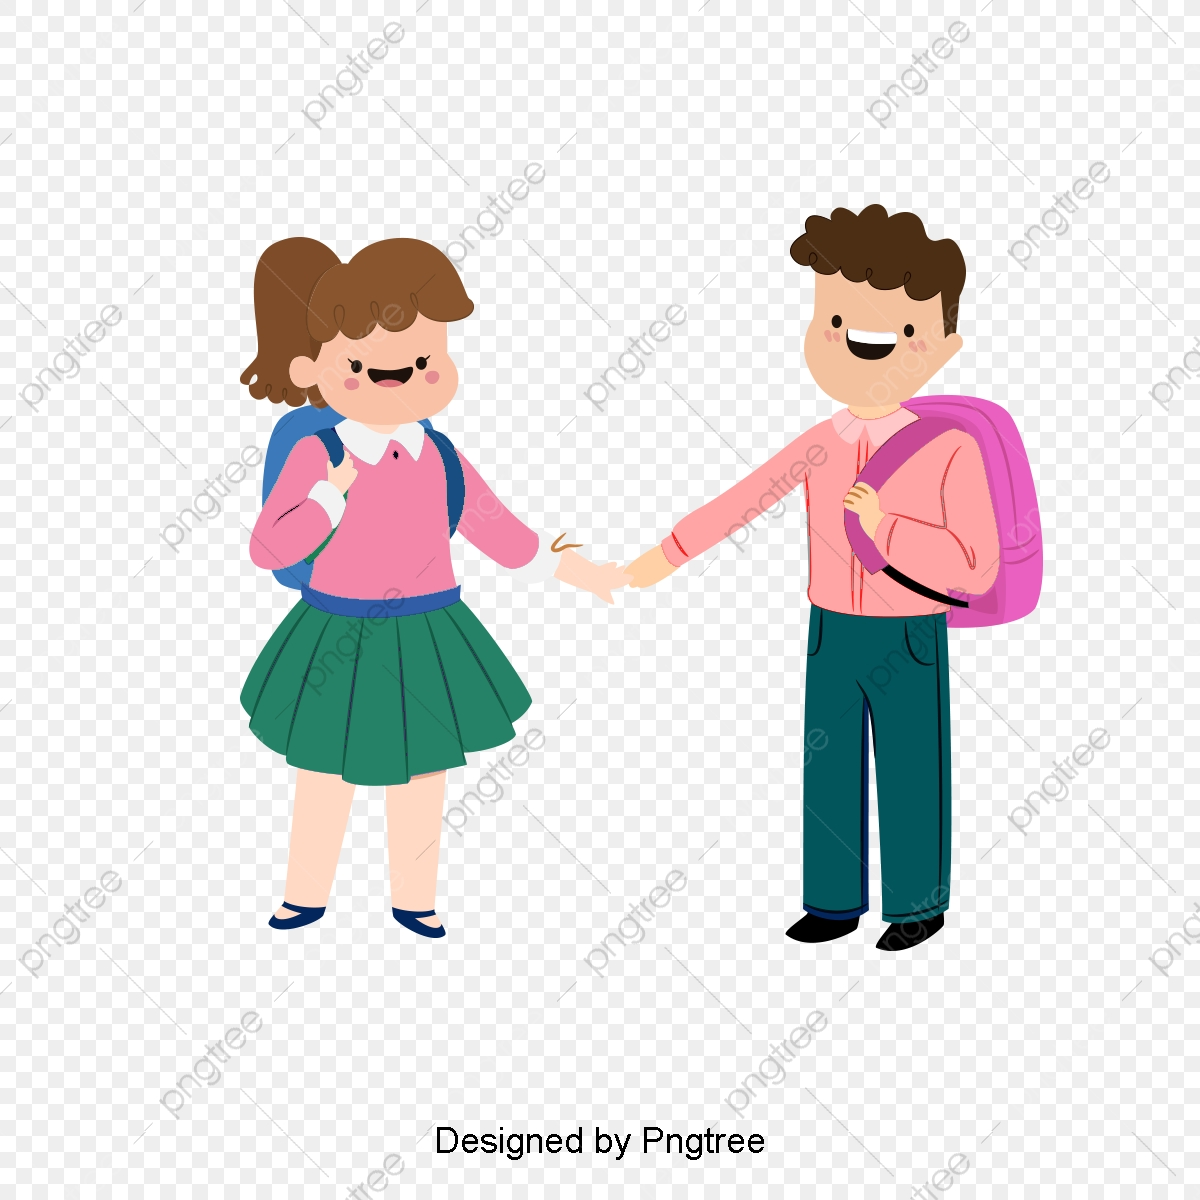 Male And Female Cartoon College Students, Cartoon Clipart, The Man.